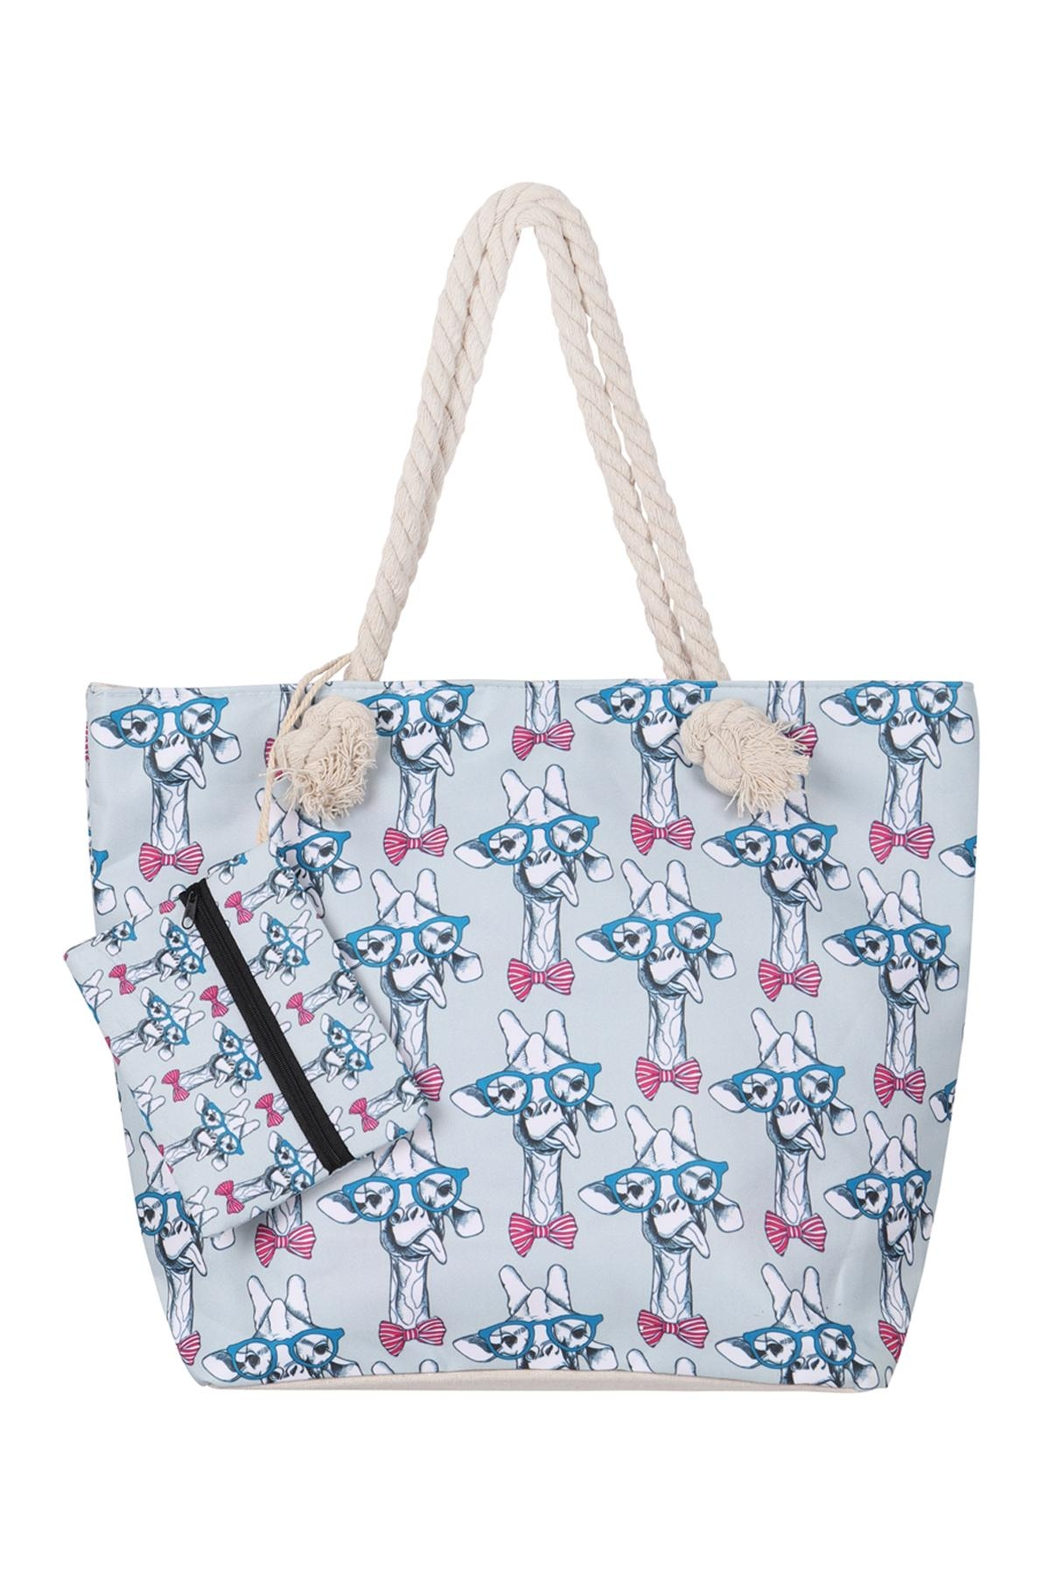 Riah Fashion Cute Animal-Digital-Printend-Tote-Bag-W/-Matching-Wallet - Front Cropped Image